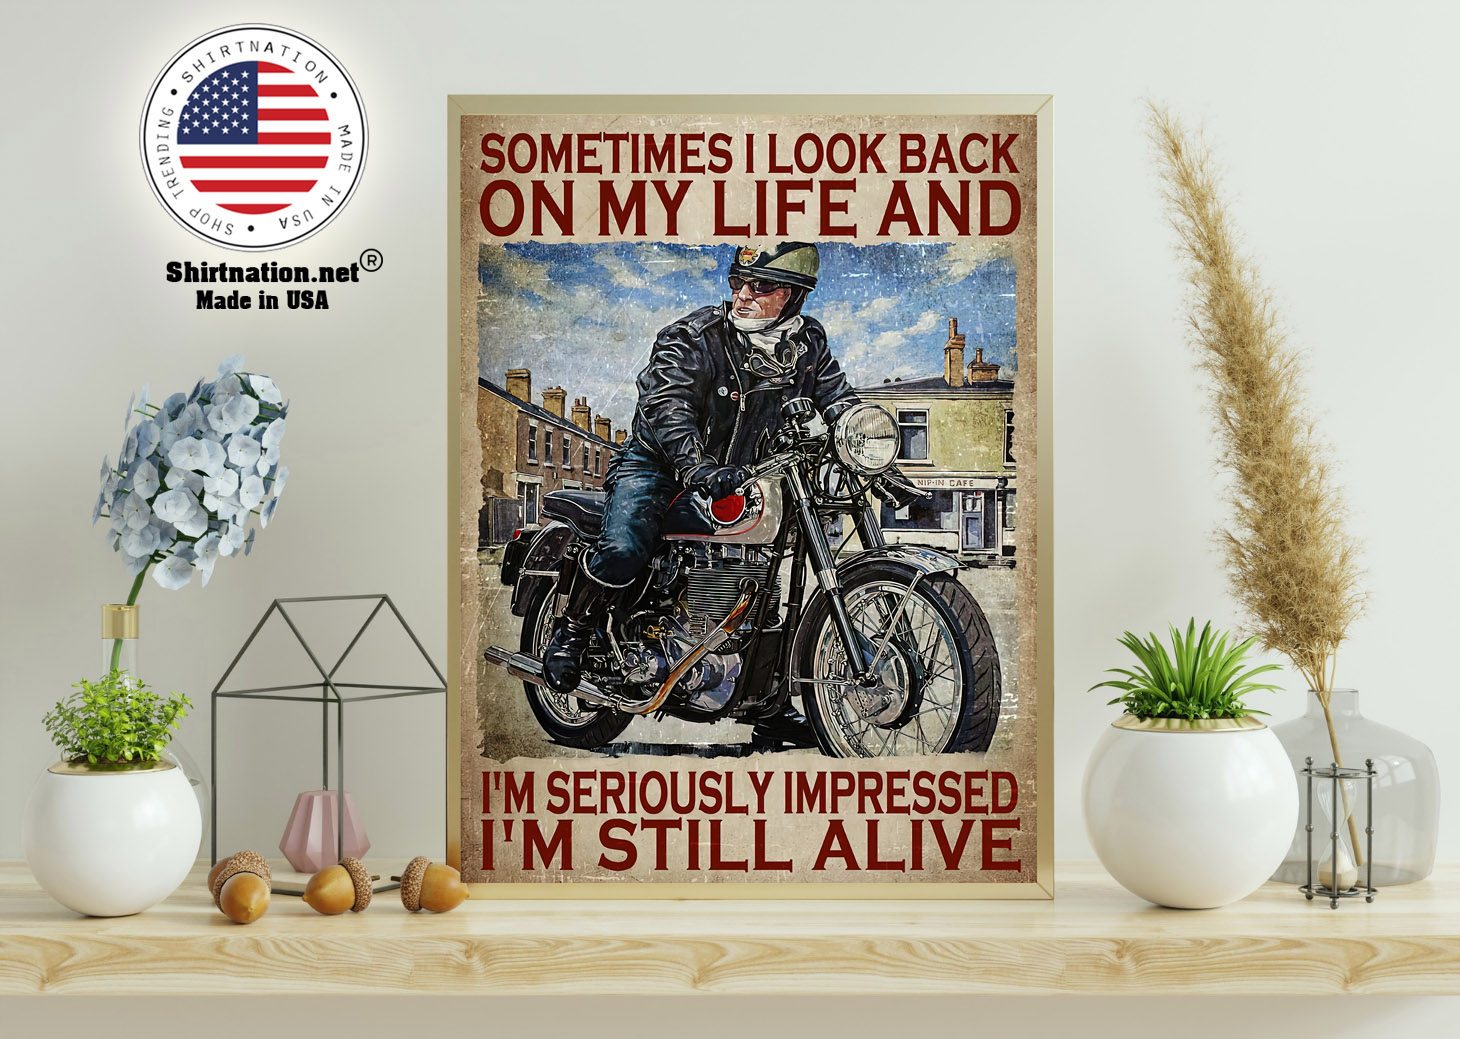 Motorcycles man Sometimes I look back on my life and Im seriously impressed Im still alive poster 11